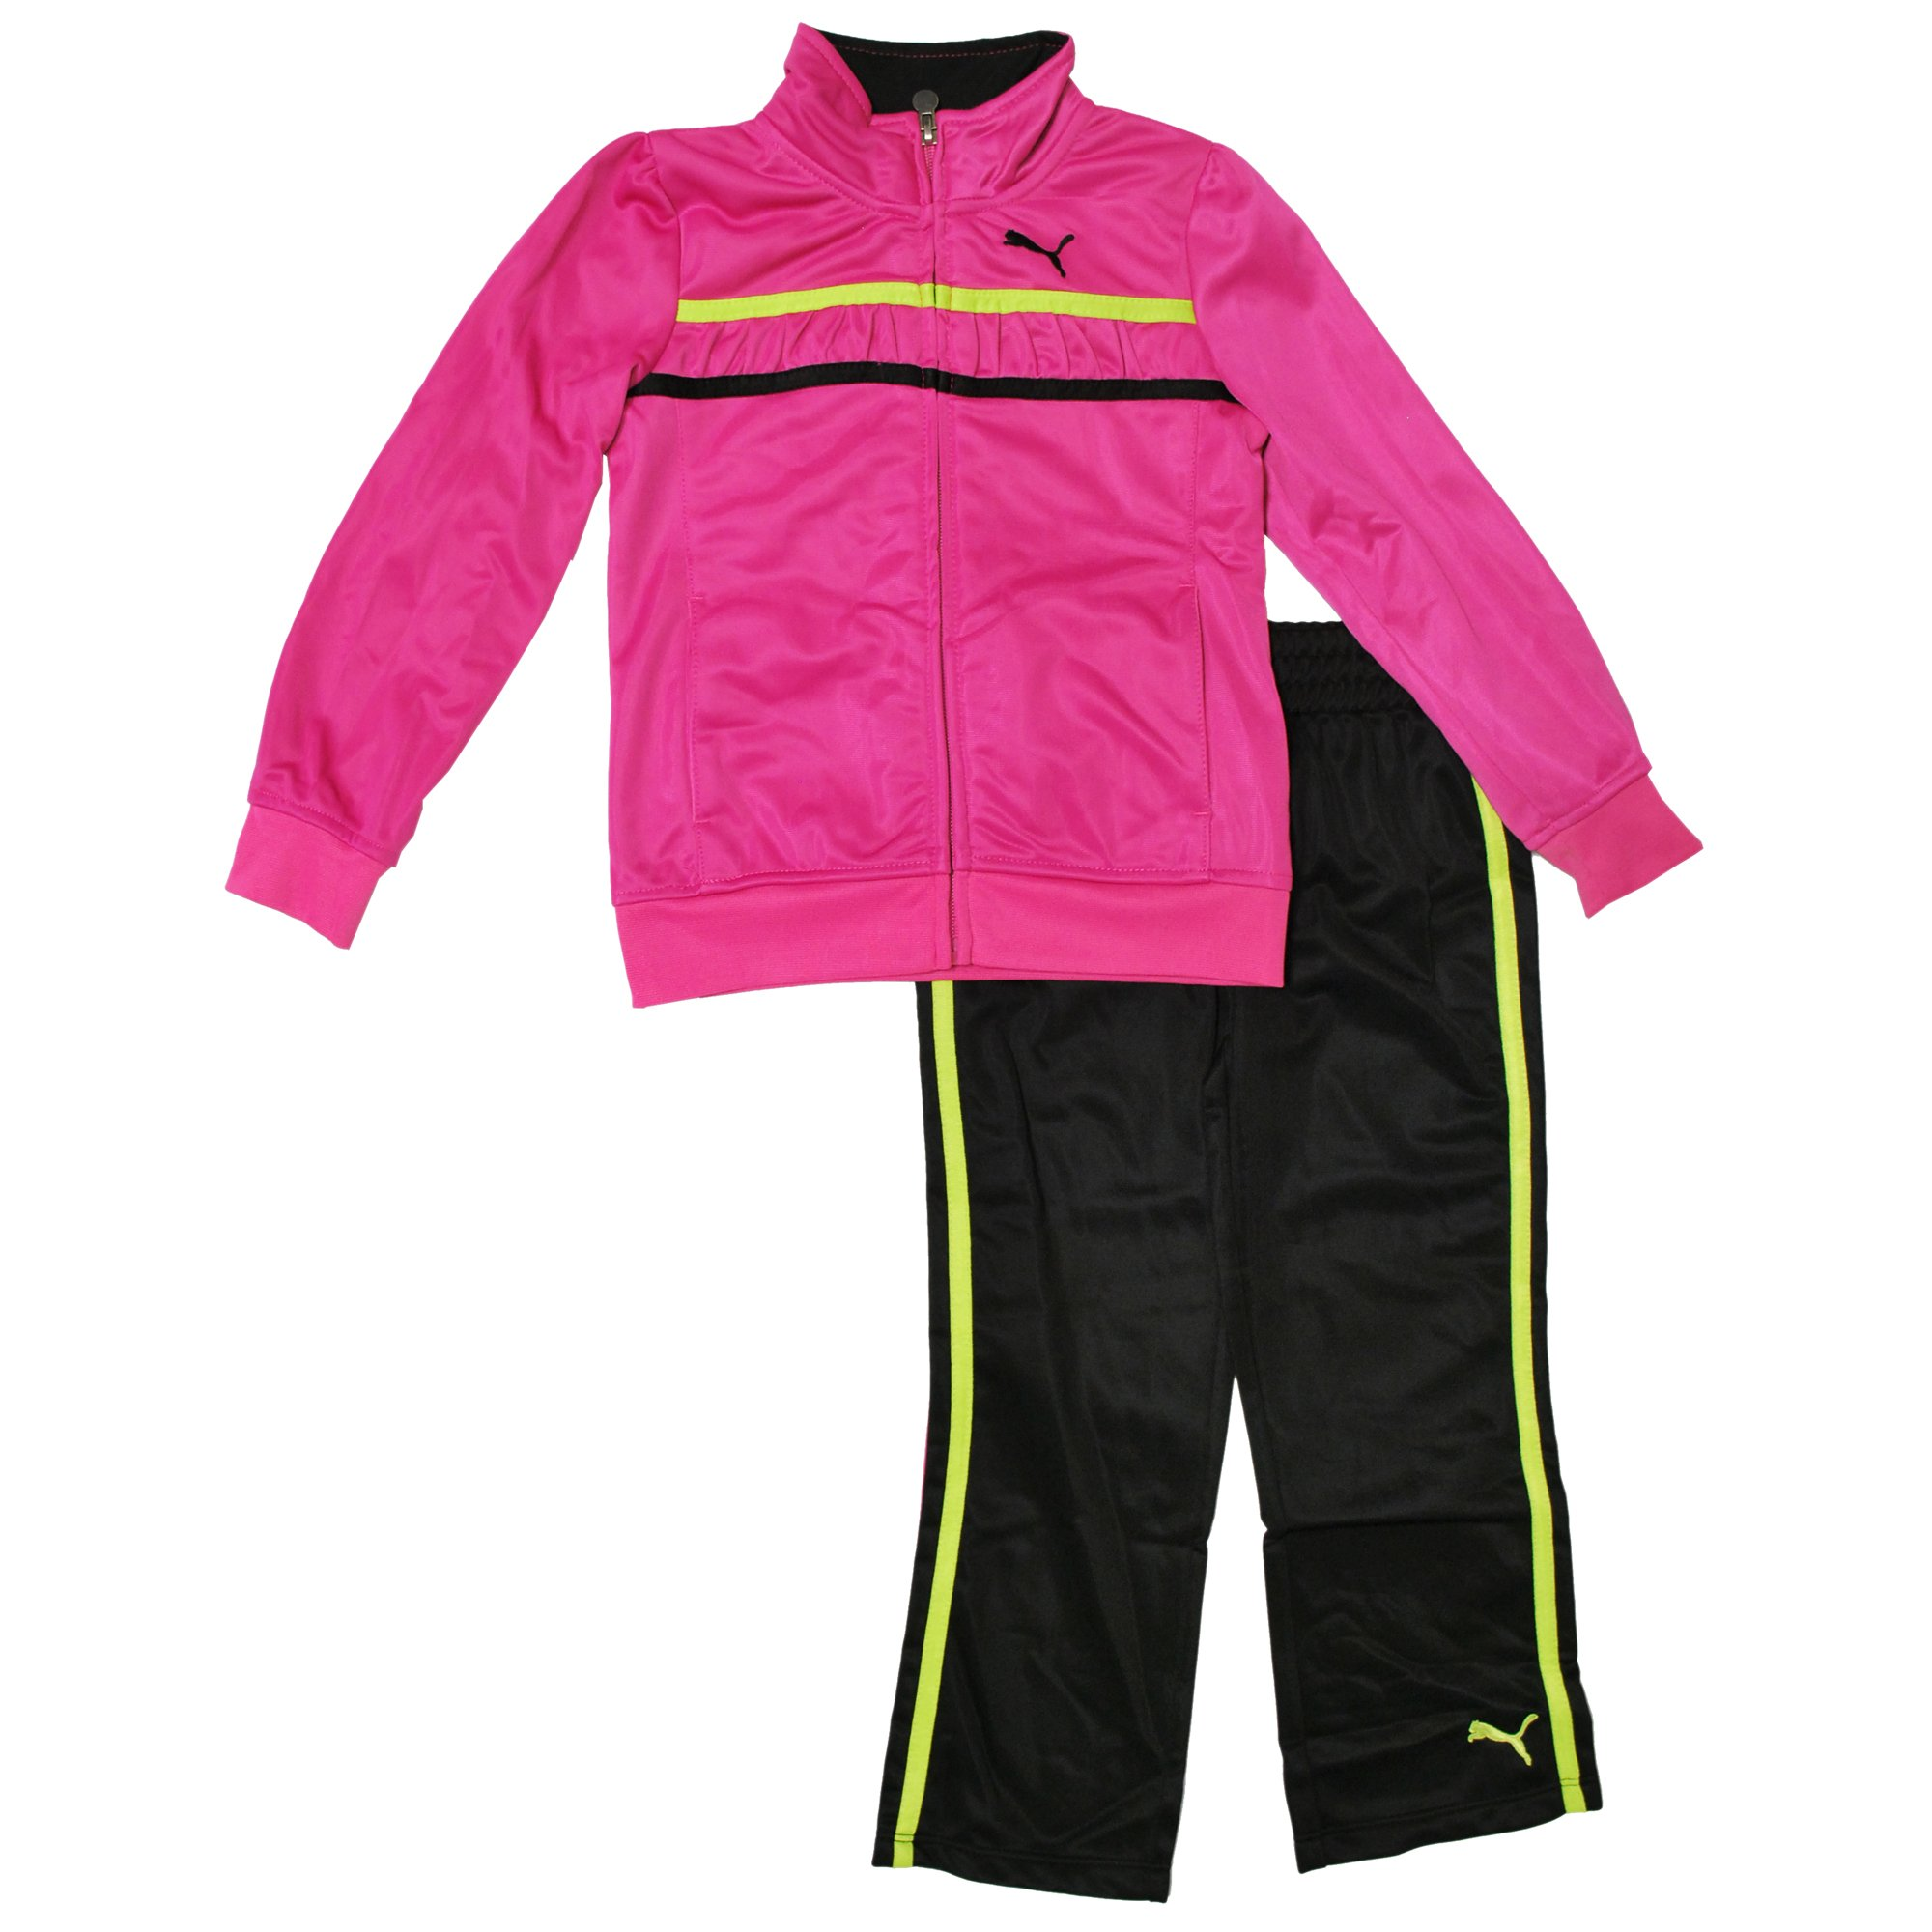 Puma Little Girls' Tape Tricot Set (2T, Pink) by PUMA